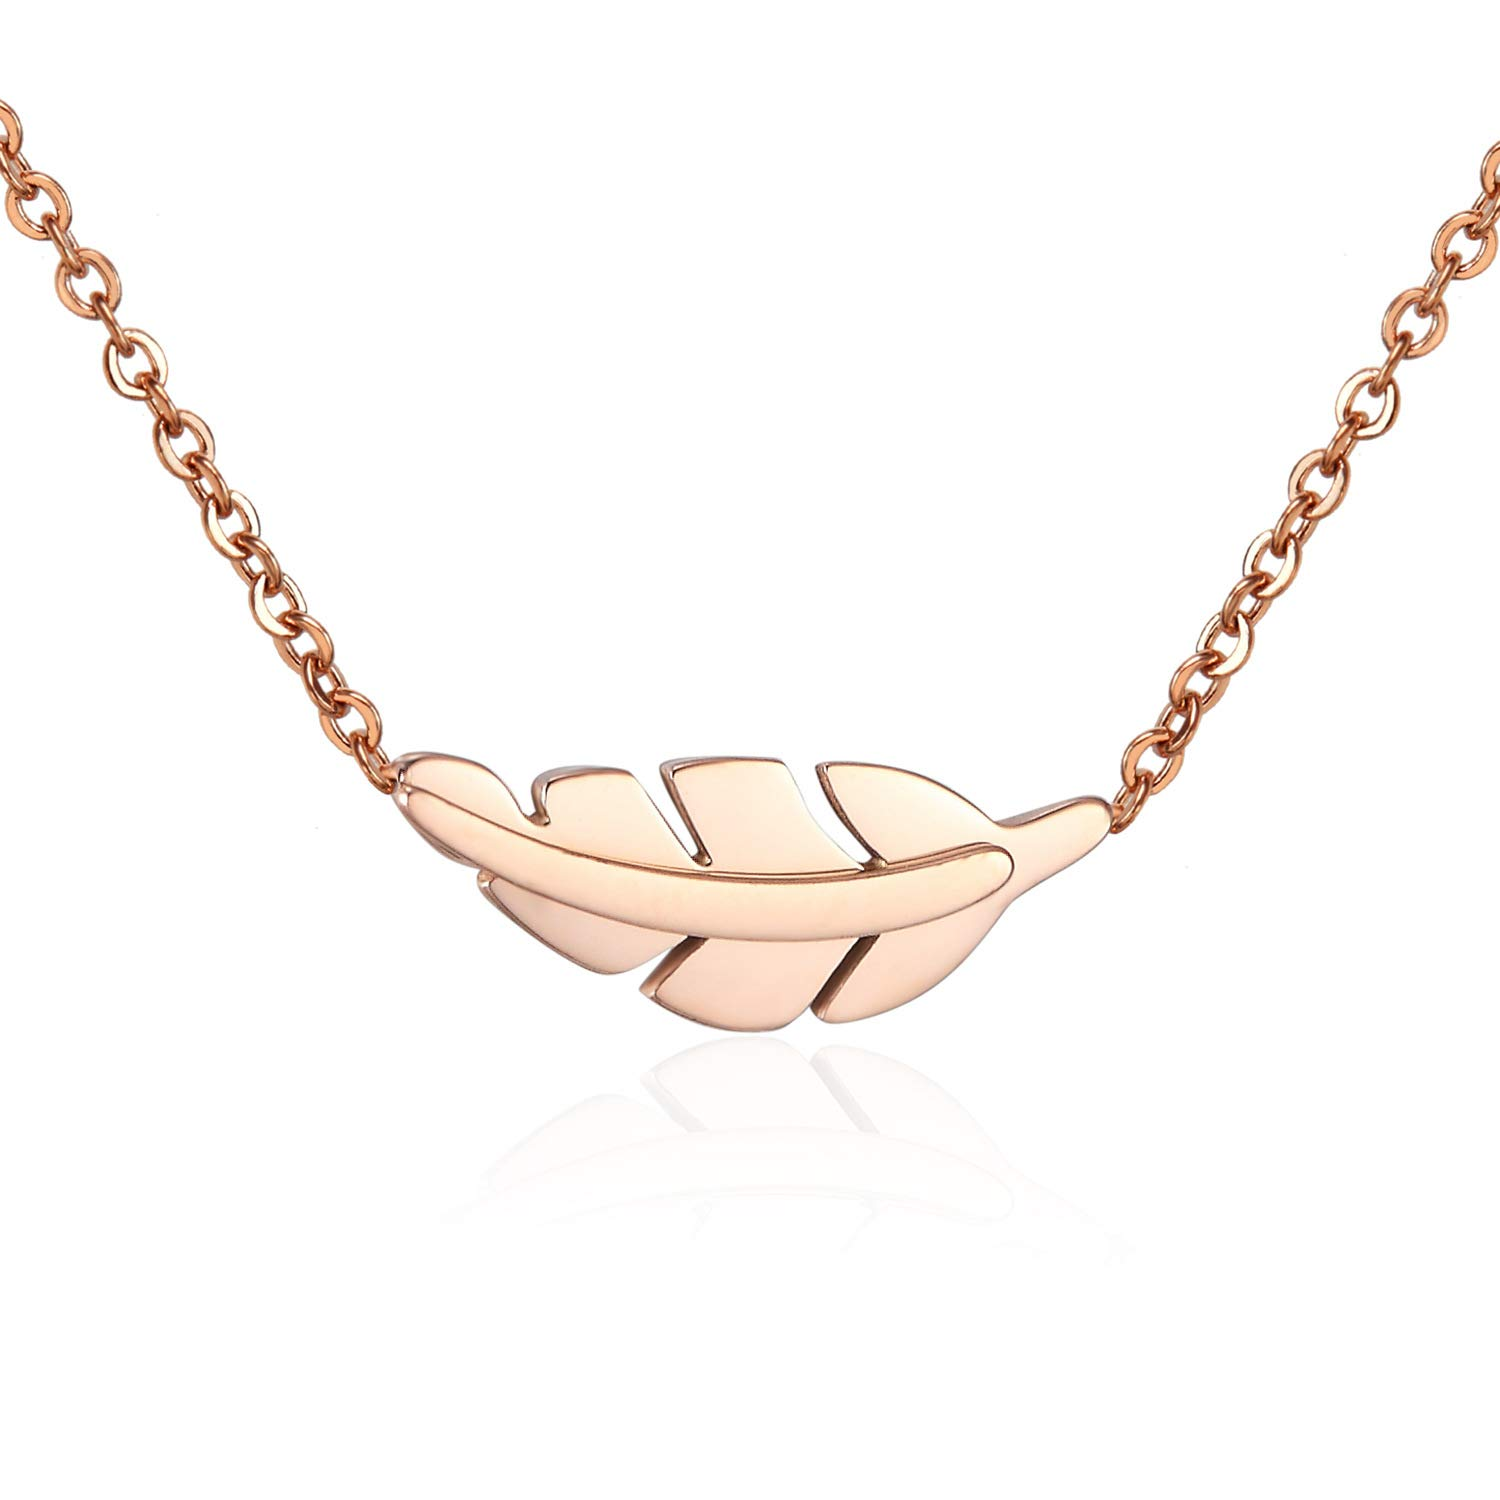 Hobbyant Electroplated Rose Gold Leaf Clavicle Chain Female Necklace